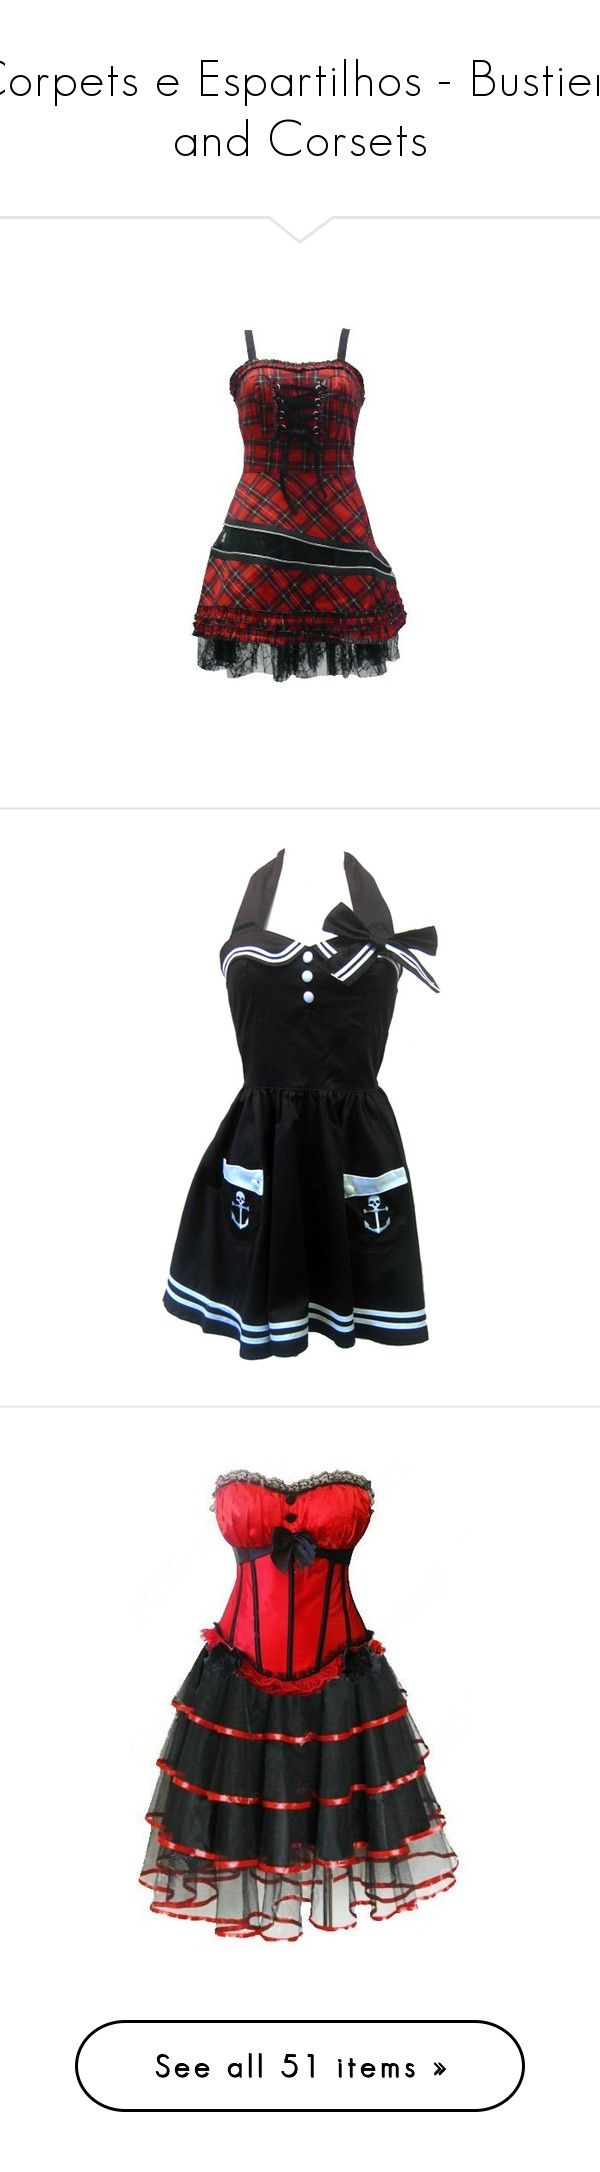 """""""Corpets e Espartilhos - Bustiers and Corsets"""" by caty-cullen-black ❤ liked on Polyvore featuring dresses, short dresses, short mini dress, hell bunny dresses, tartan plaid dress, plaid cocktail dresses, red cocktail dress, vestidos, goth punk dress and mini dress"""